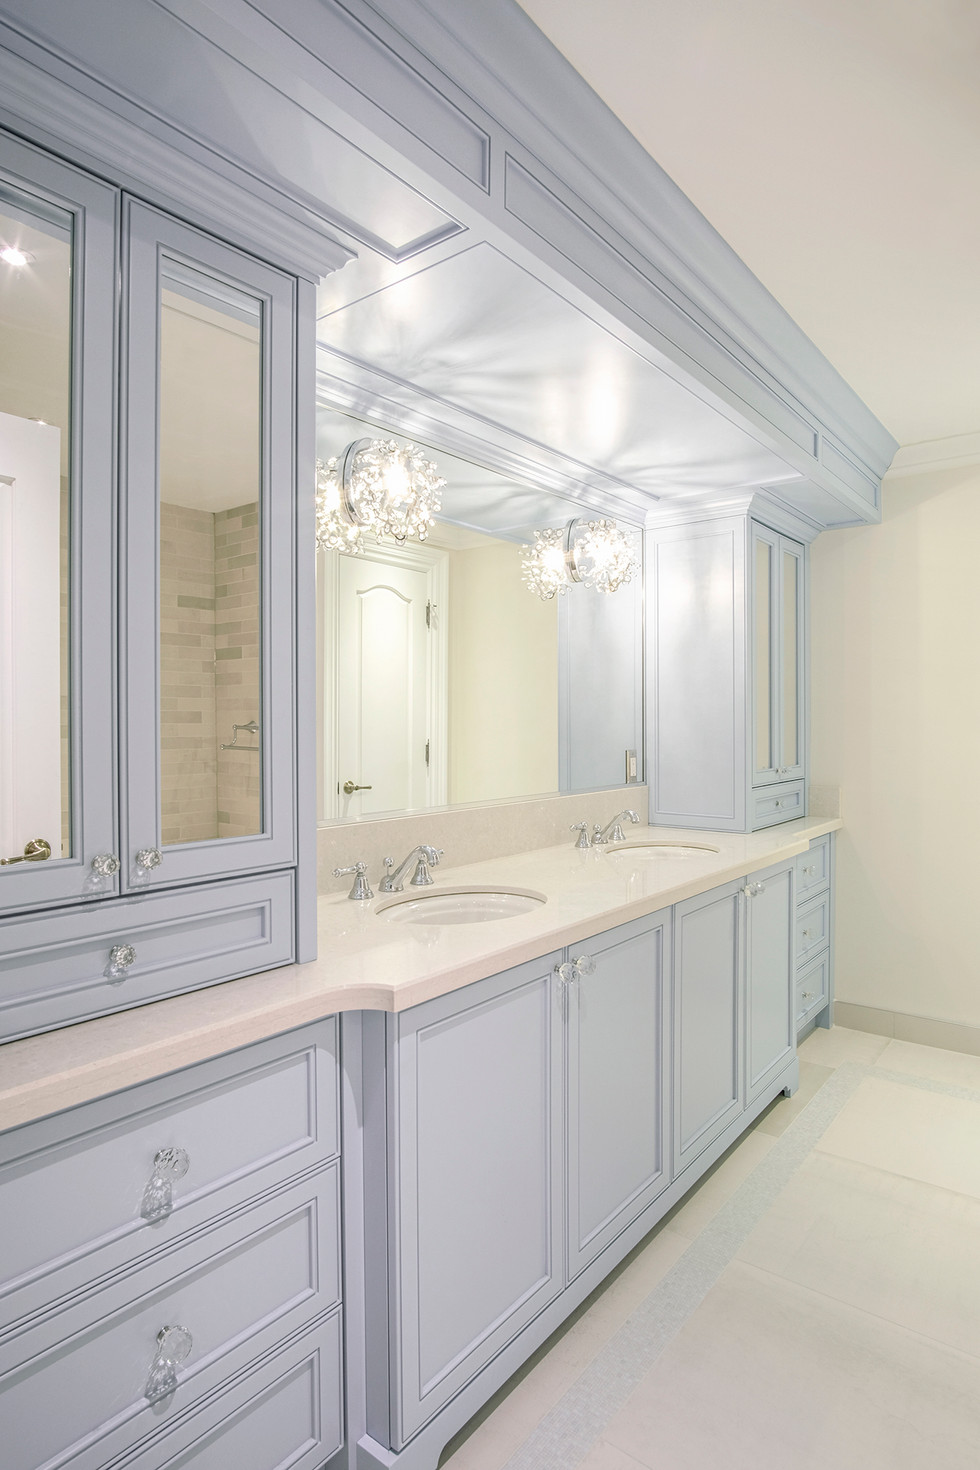 Girls' Bathroom Vanity